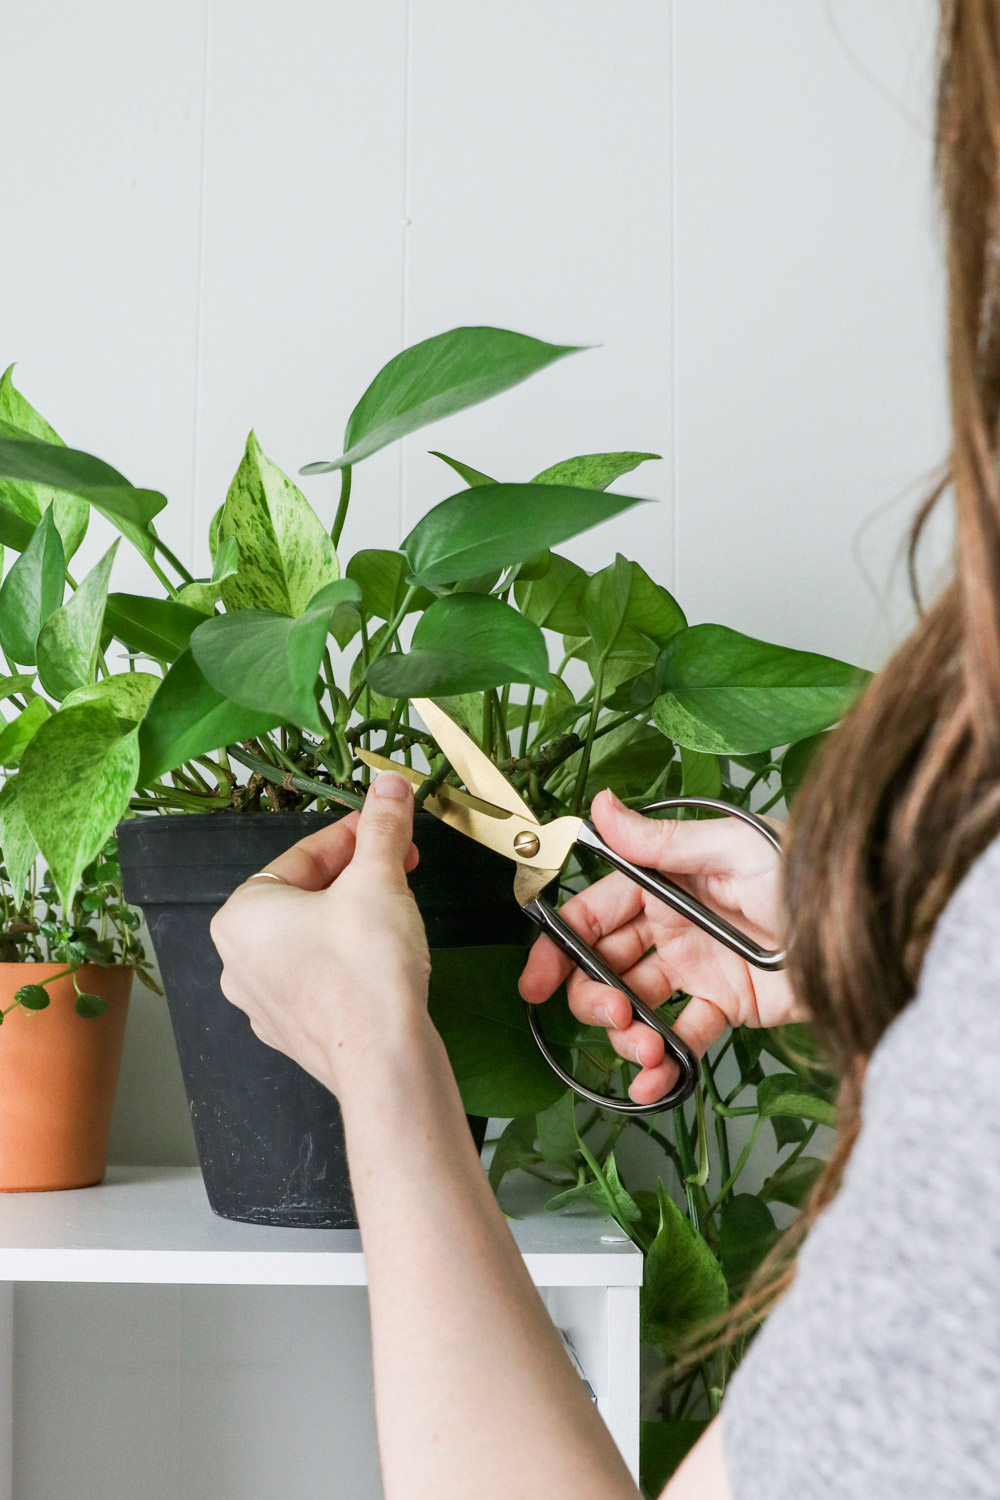 A How-To Guide on Growing from Cuttings